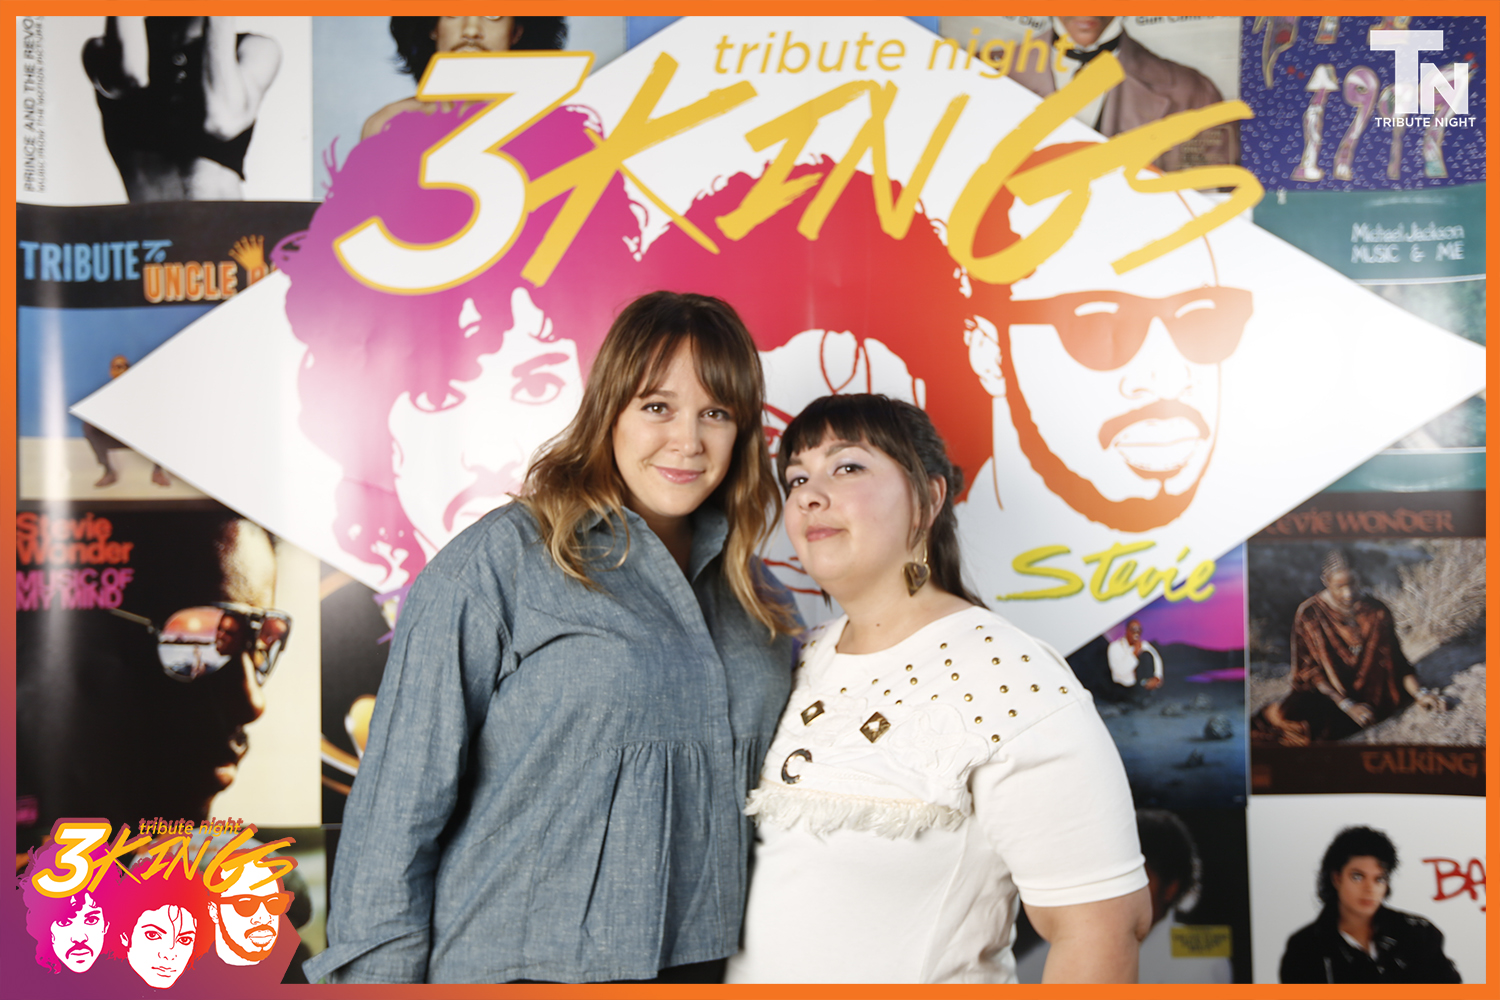 3kings Tribute Night Logo188.jpg